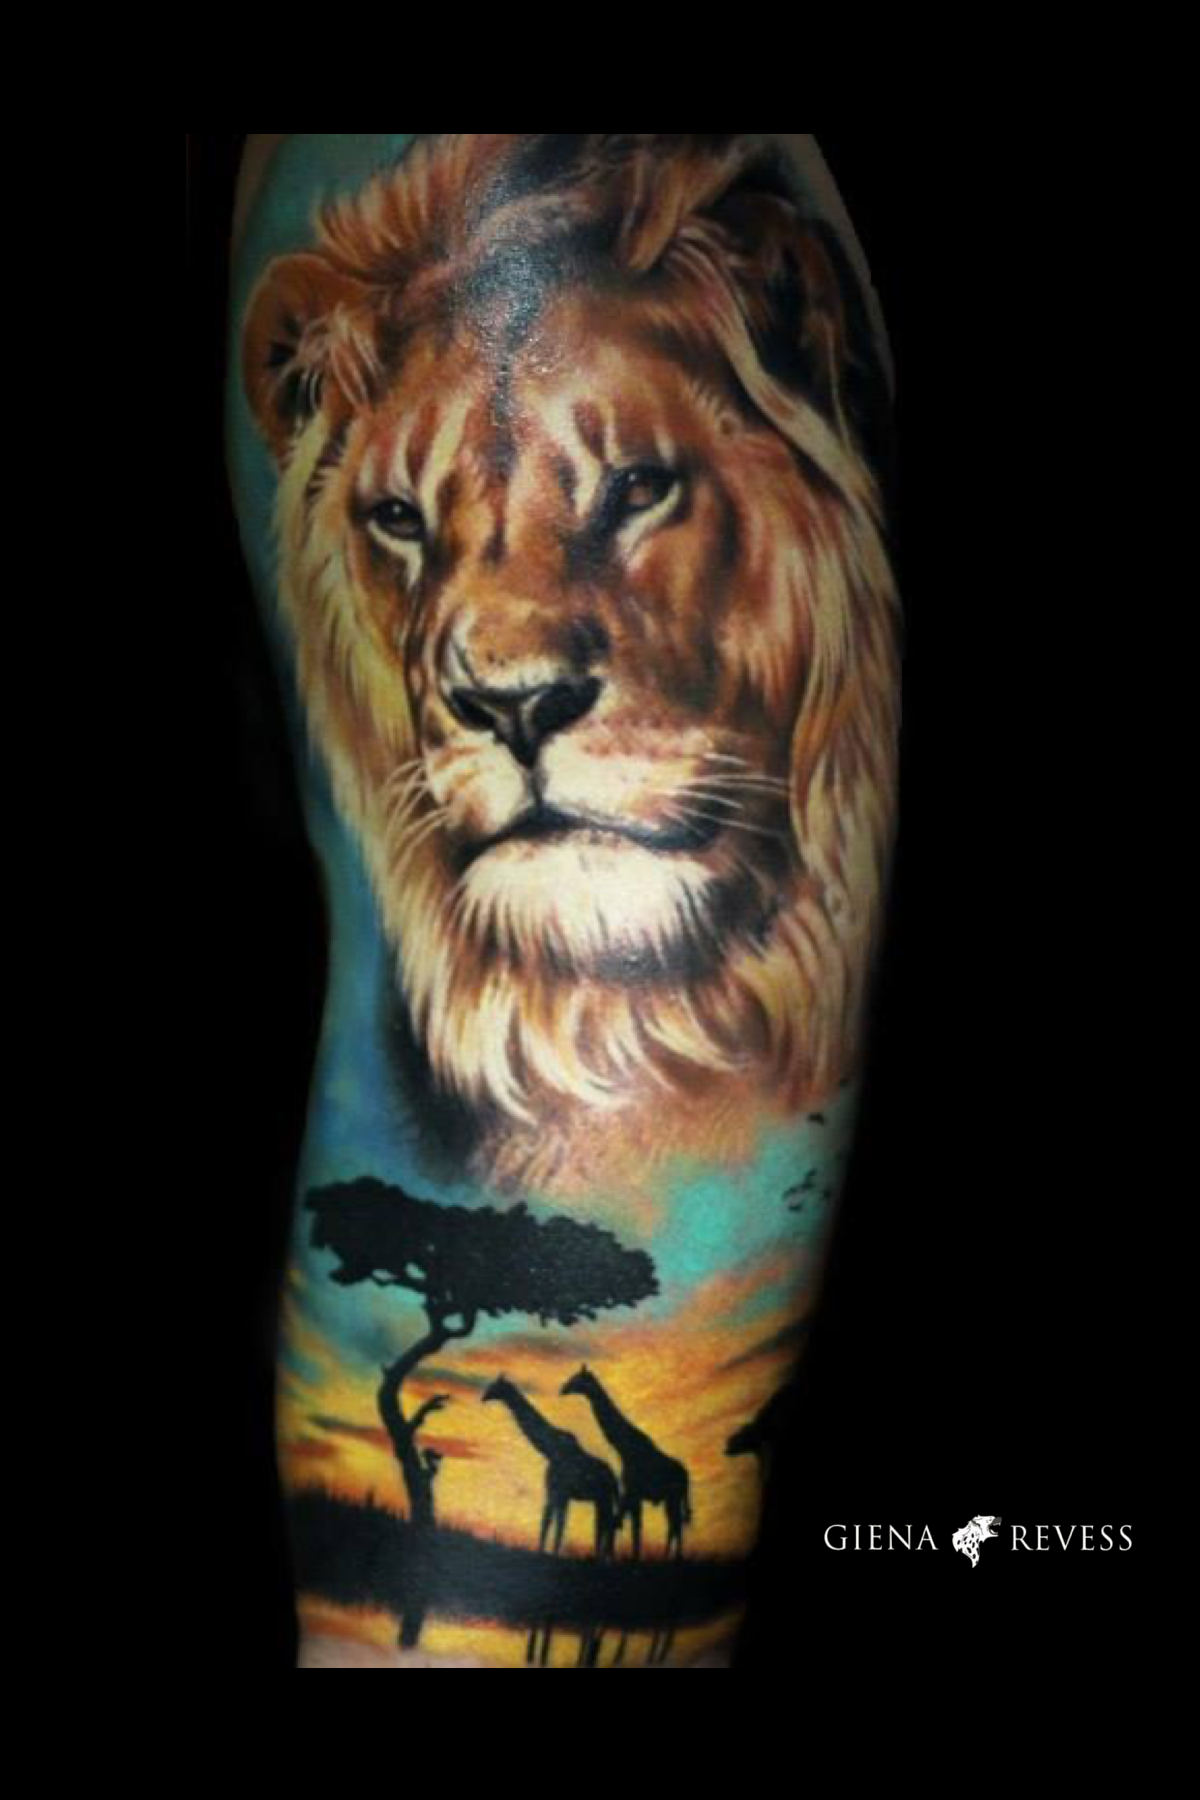 Realistic Lion Tattoo Made By Giena Revess Arm Tattoo Lion Tattoo Animal Tattoos Animal Tattoo